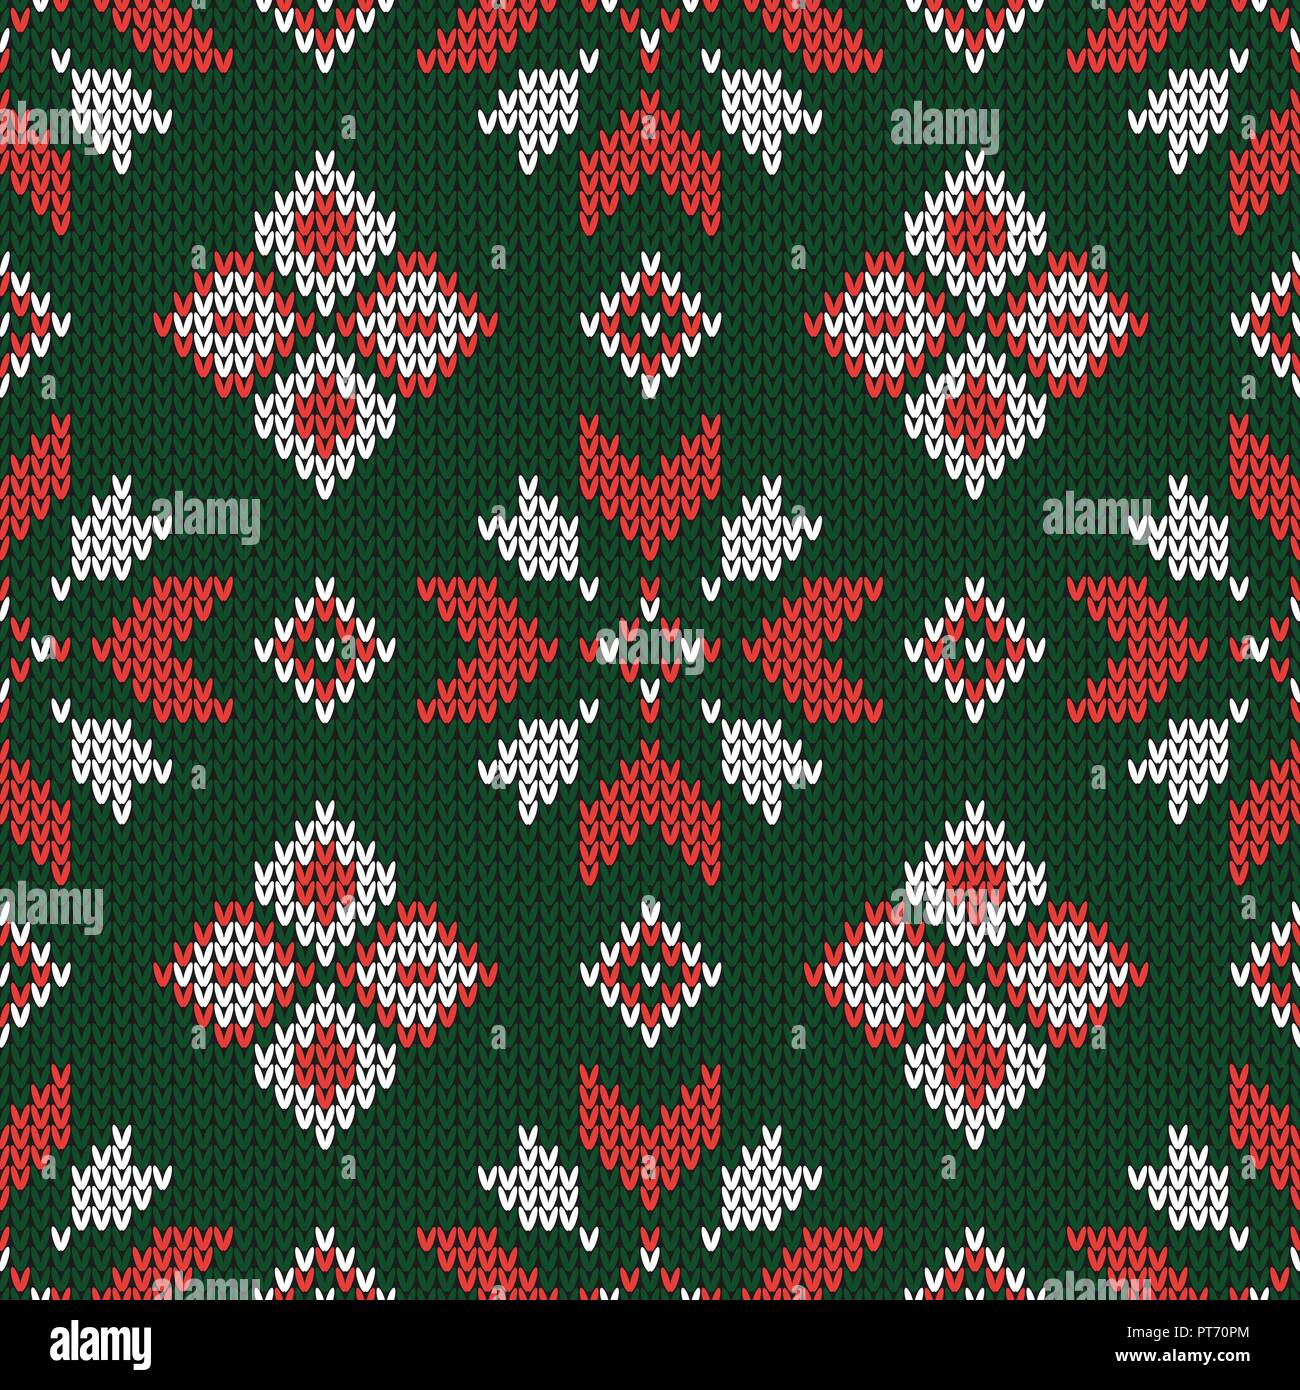 6b5683a45 Christmas knitted pattern. Geometric abstract seamless pattern. Design for  sweater